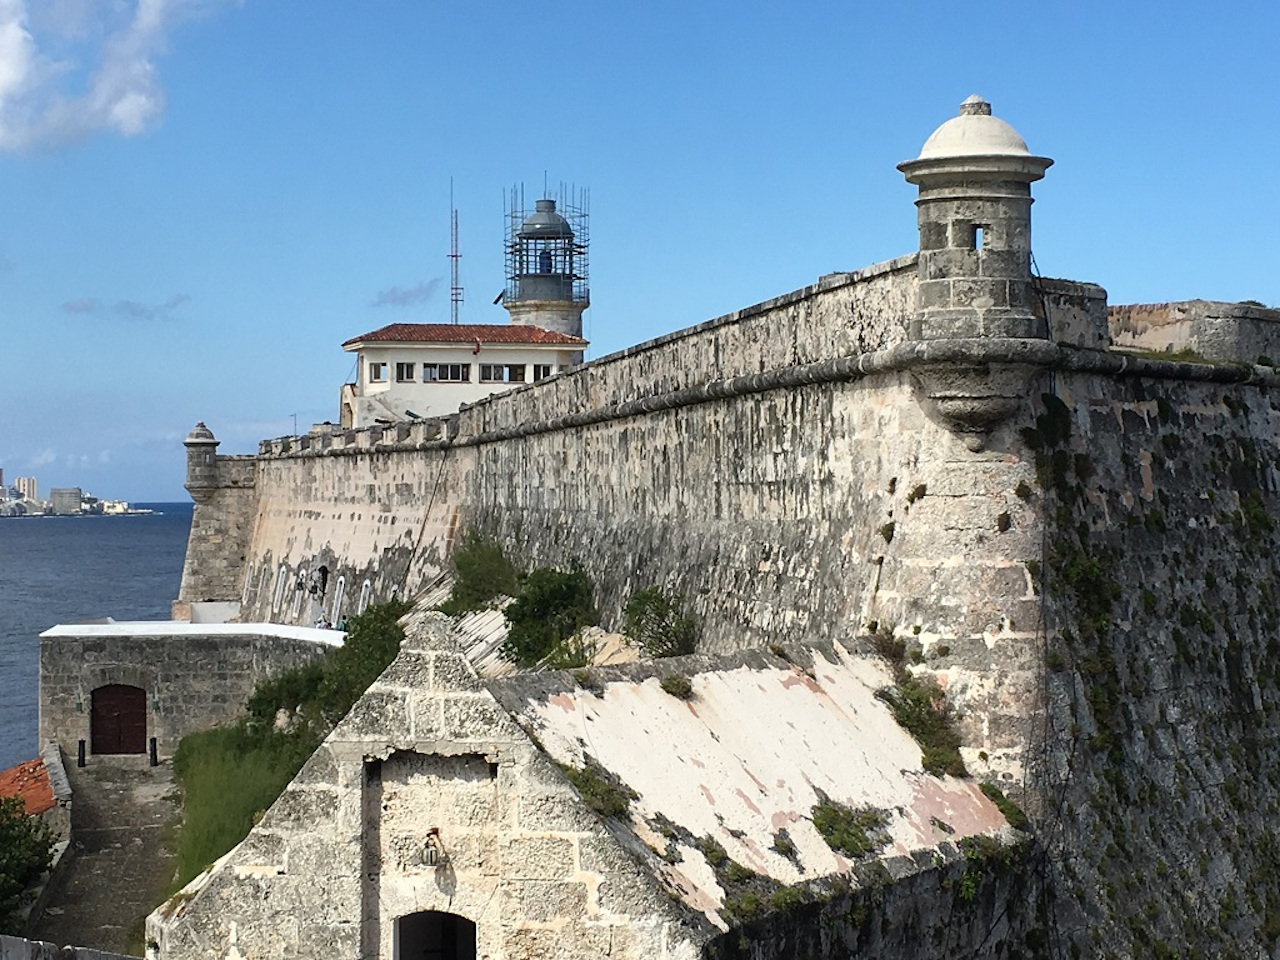 Havana colonial fort. The best Havana attractions to include on your Havana itinerary